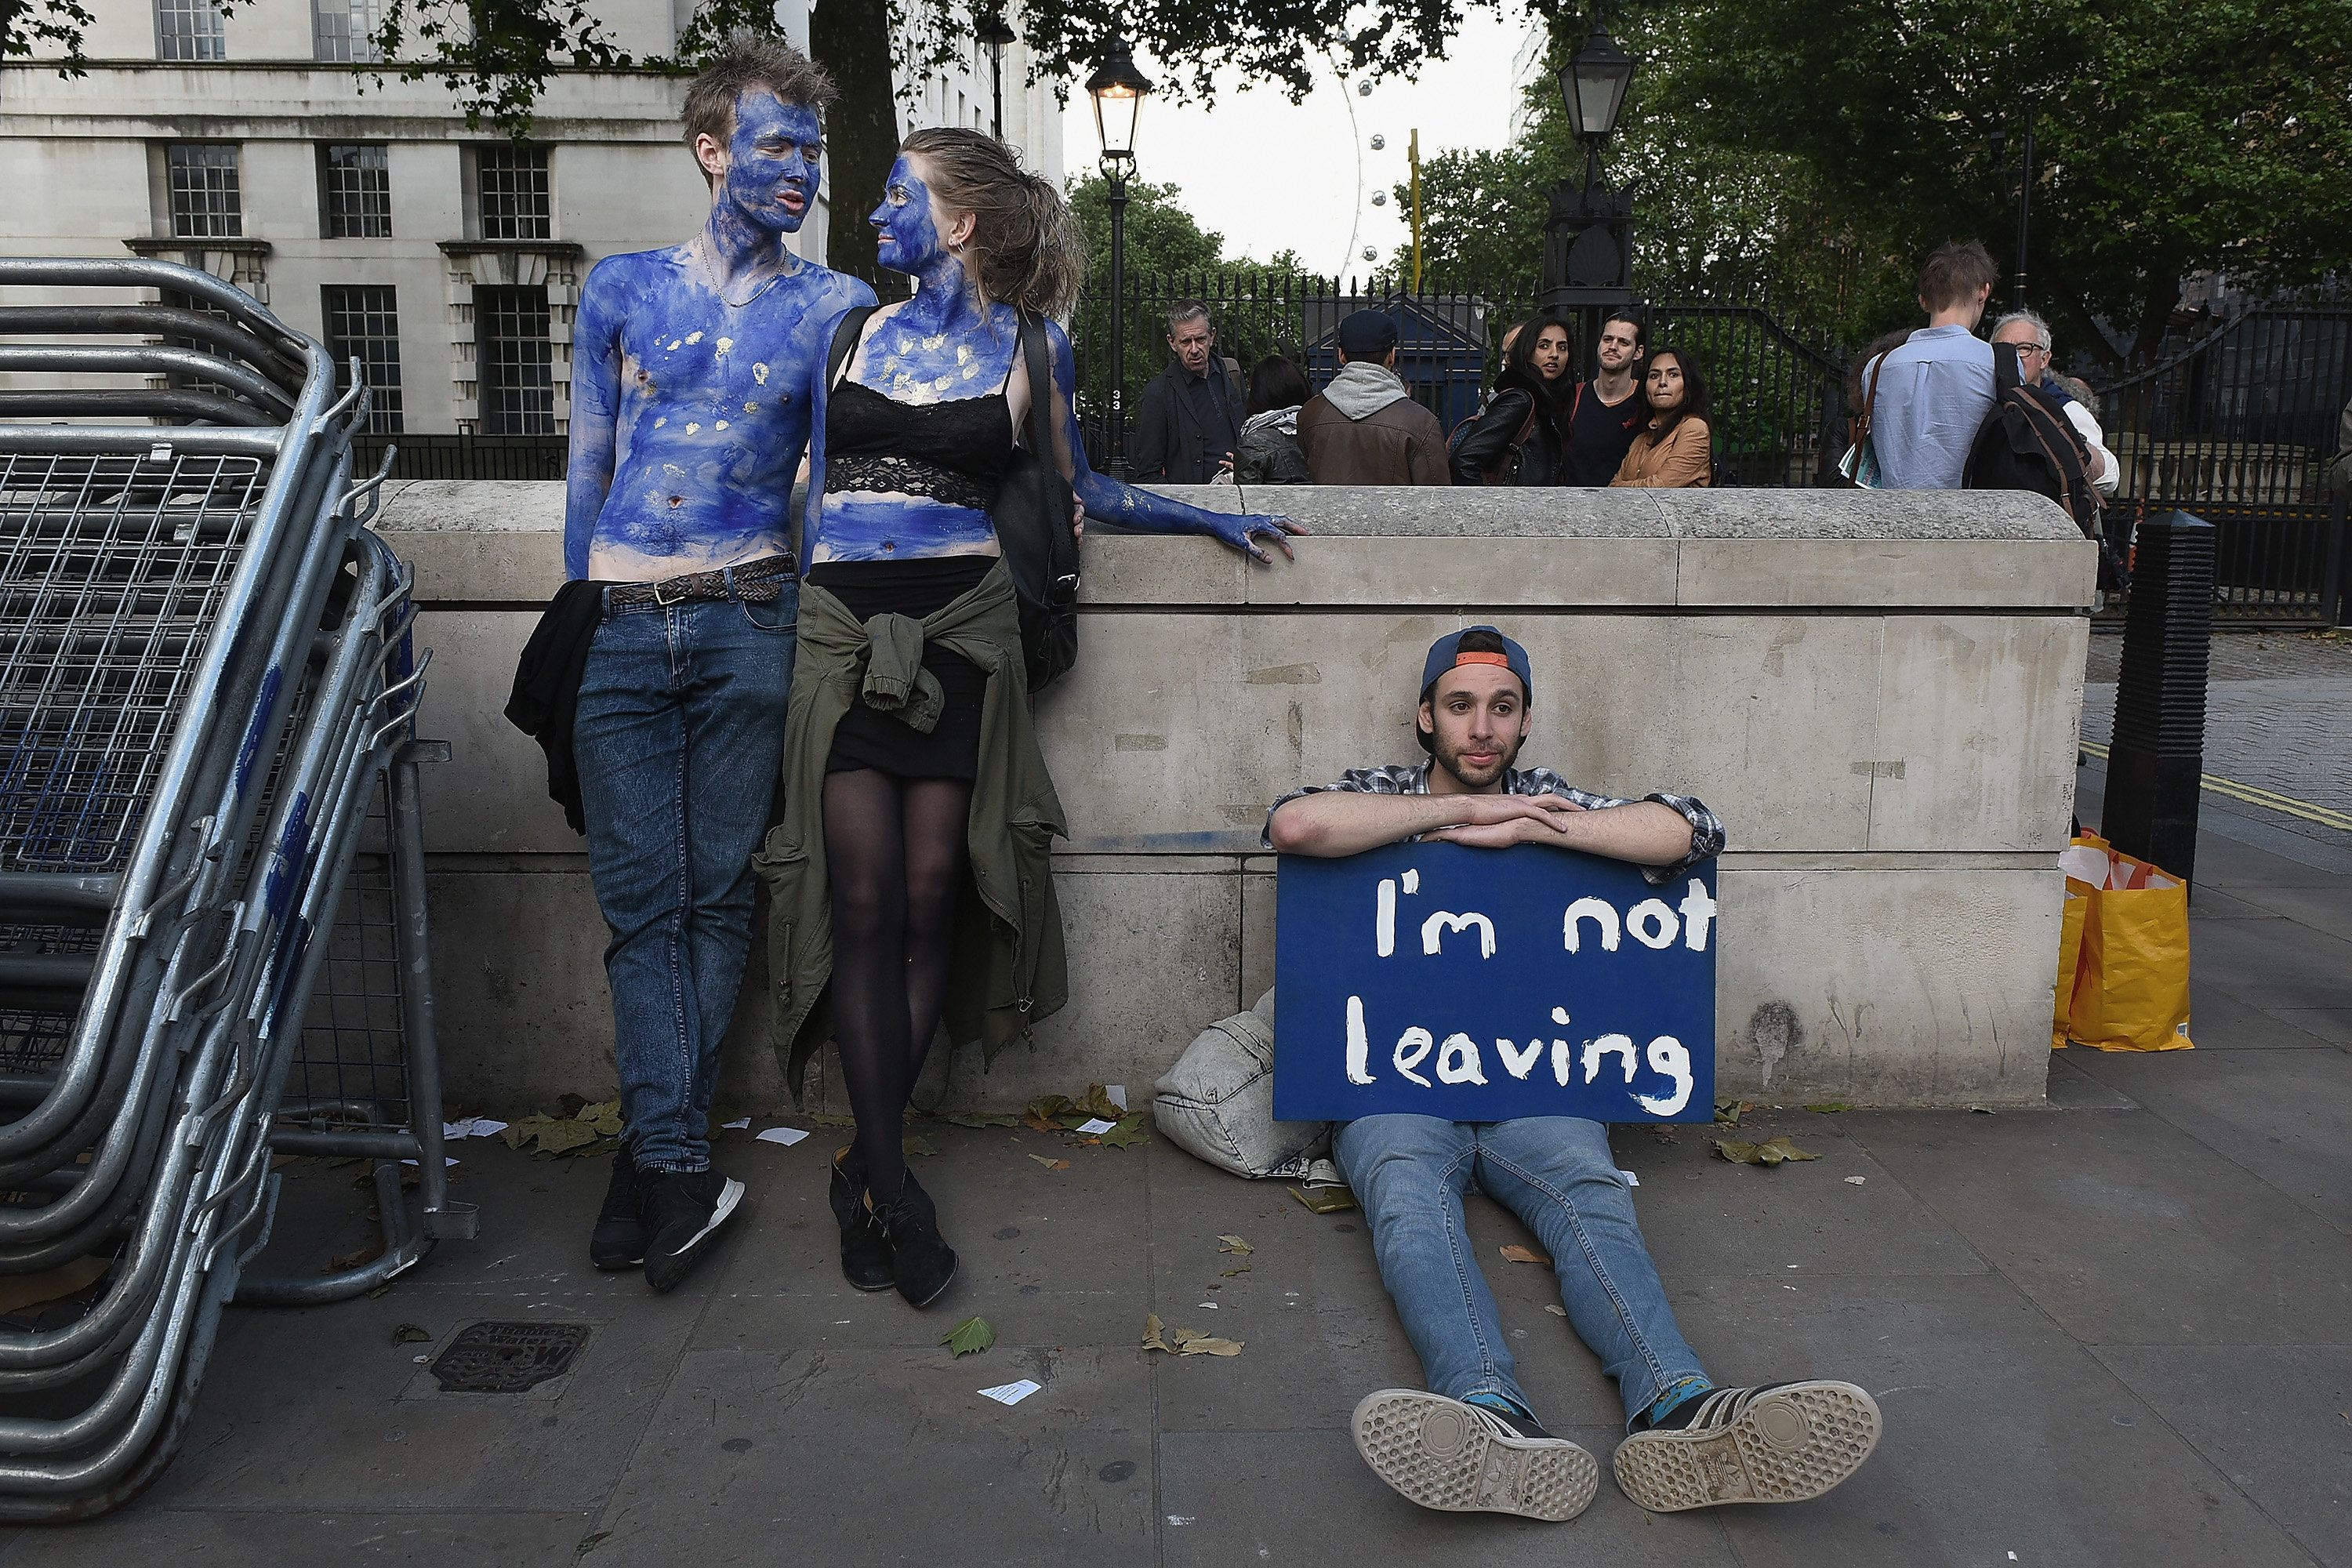 People protest against the U.K.'s referendum vote to leave the EU in London on Friday. Some 52 percent of voters ch